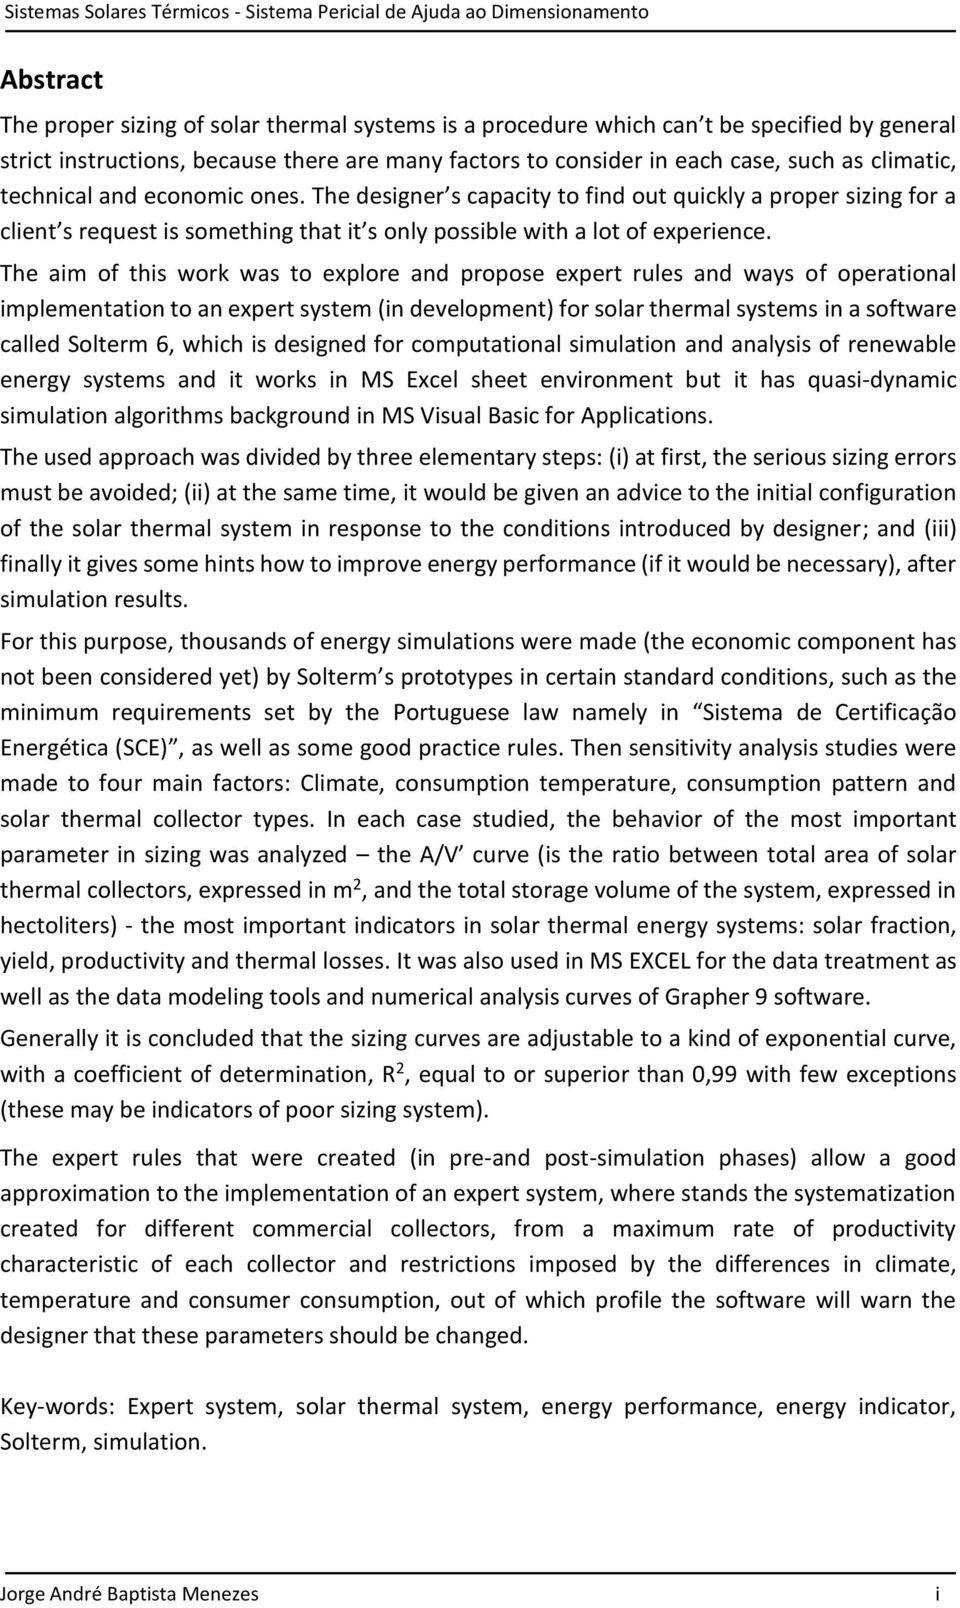 The aim of this work was to explore and propose expert rules and ways of operational implementation to an expert system (in development) for solar thermal systems in a software called Solterm 6,